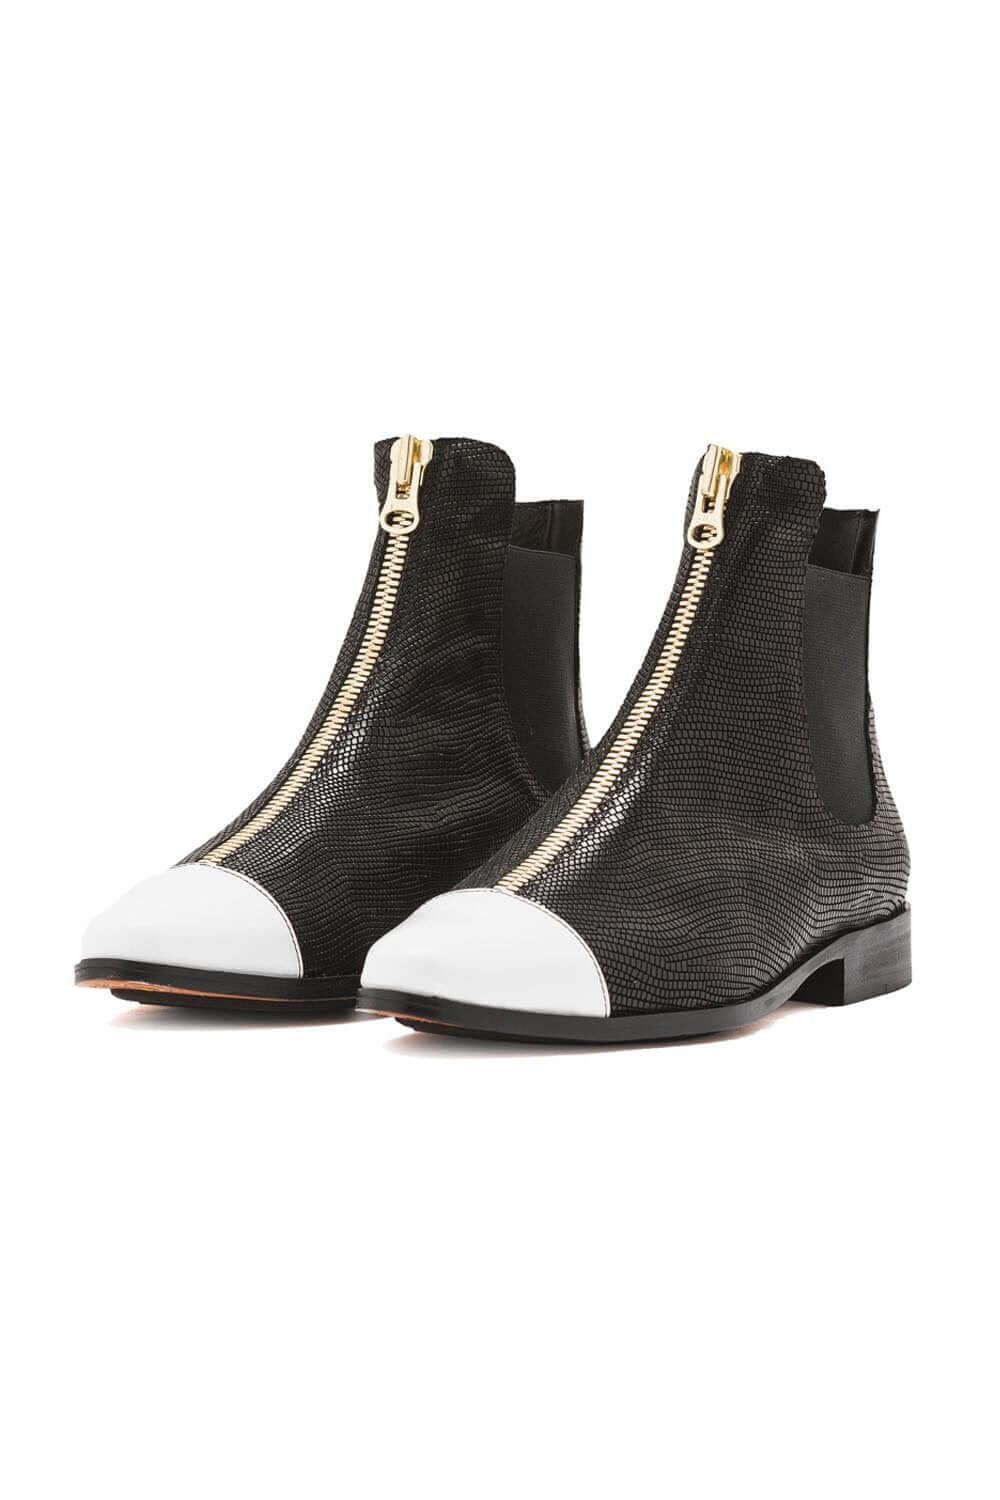 Duchesse boots in black leather